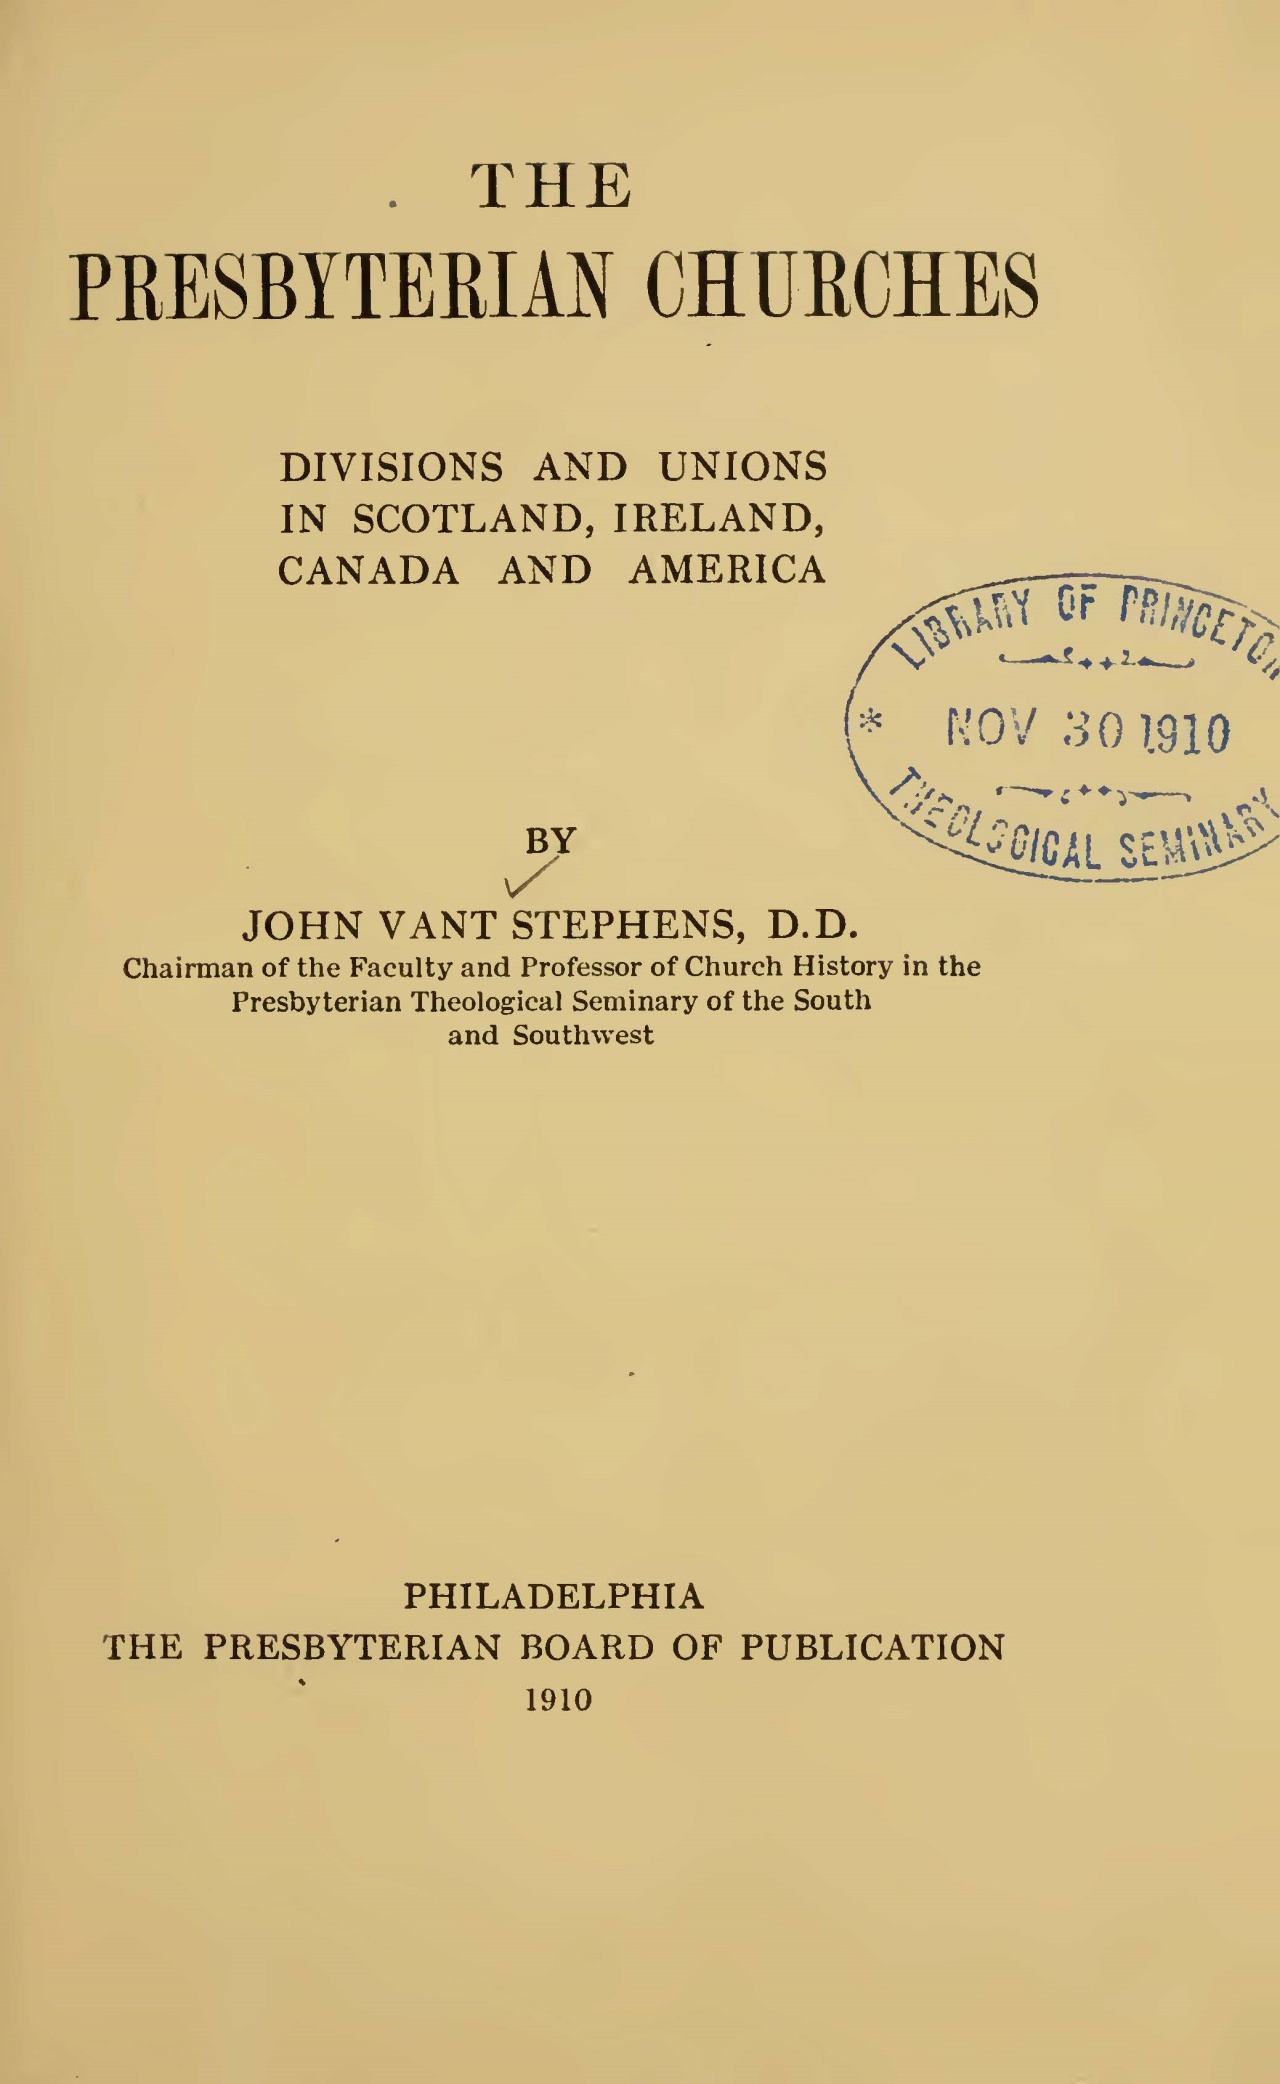 Vant Stephens, Sr., John, The Presbyterian Churches Divisions and Unions Title Page.jpg